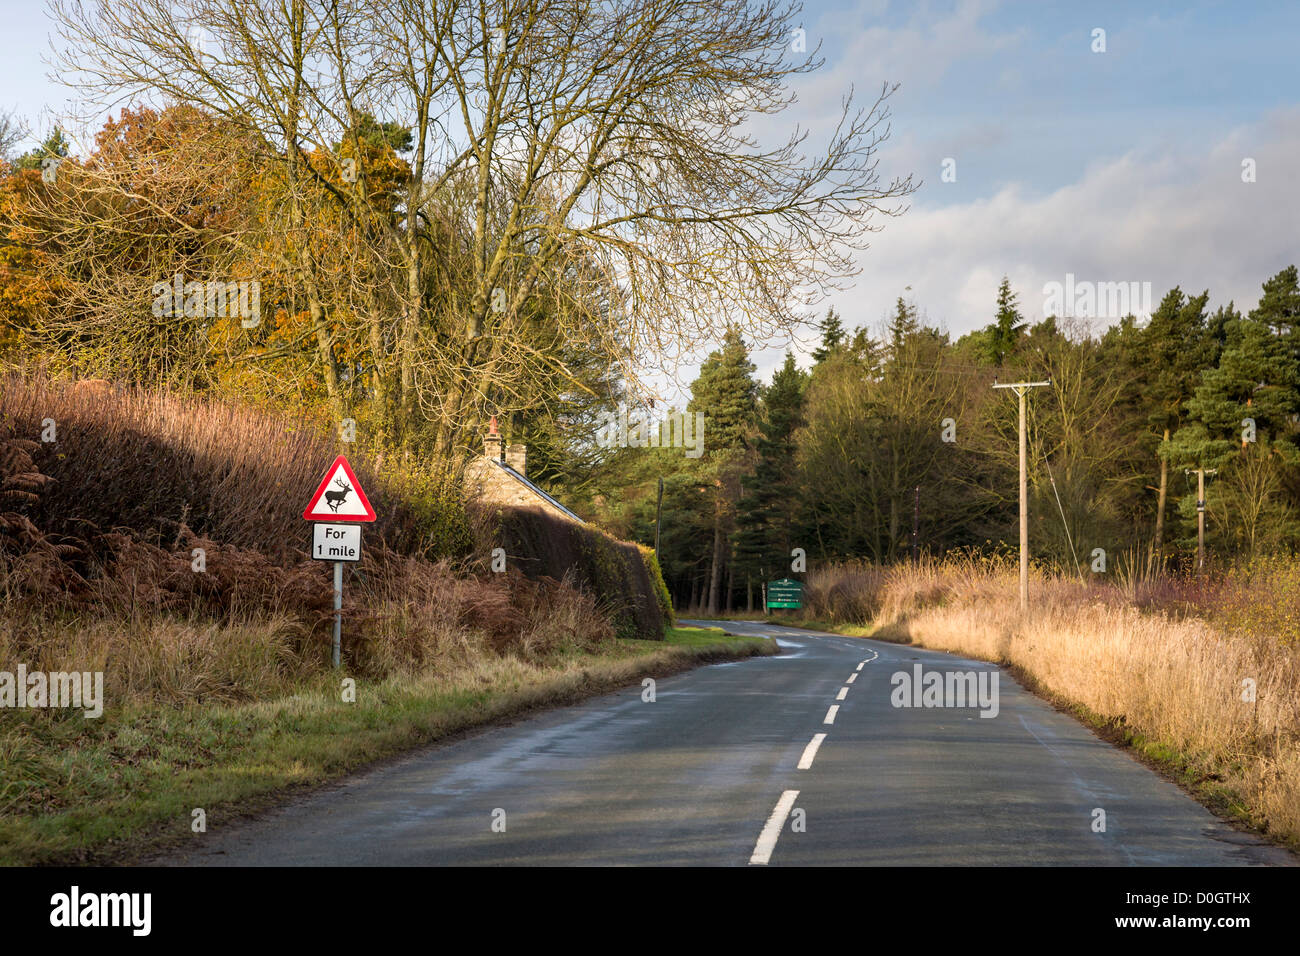 Deer warning sign on a country road. A cold bright afternoon in late Autumn. Moor Lane, Rosedale, North Yorkshire, - Stock Image